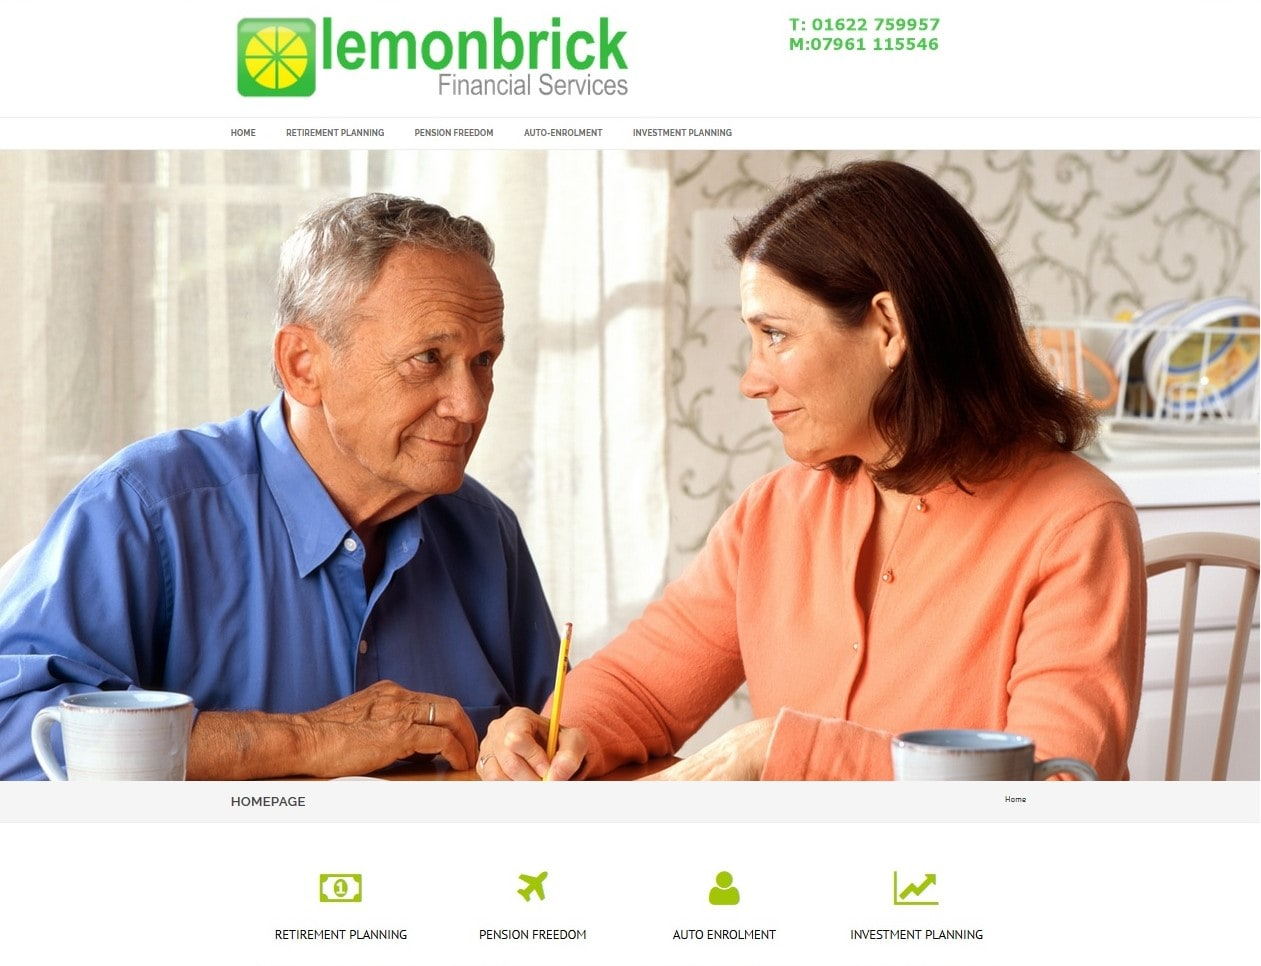 Lemonbrick Website supplied by Managed Web Services